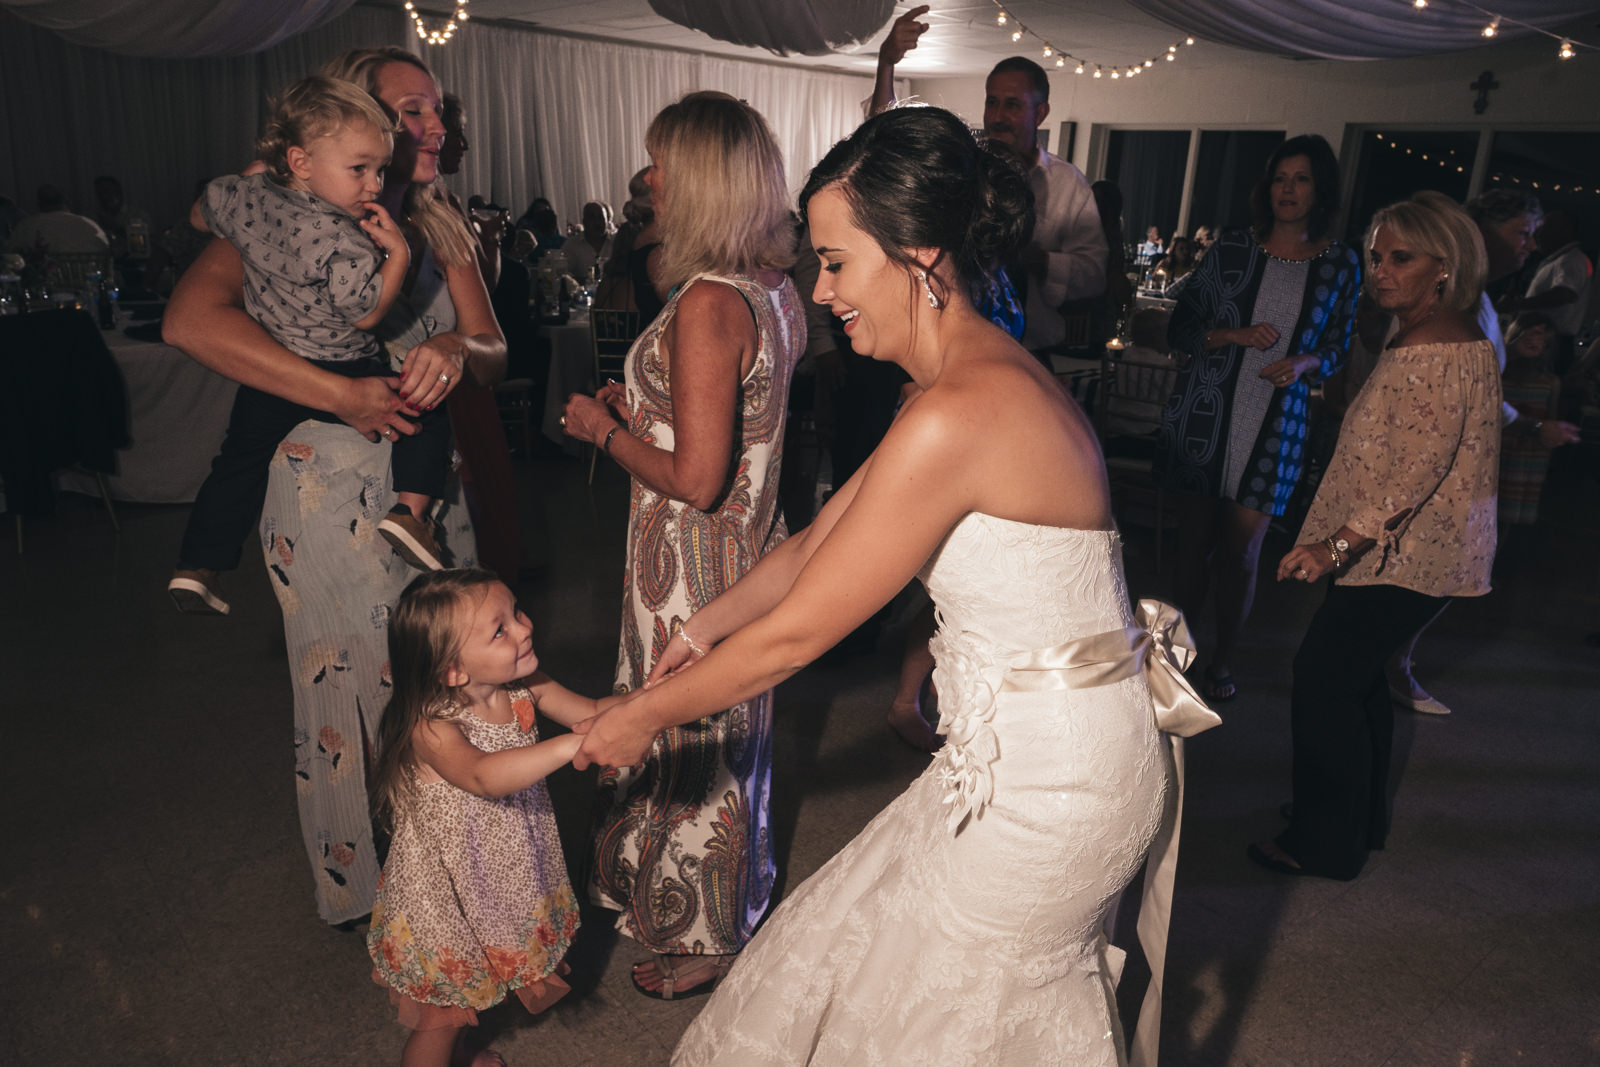 bride dances with a little girl during her wedding reception